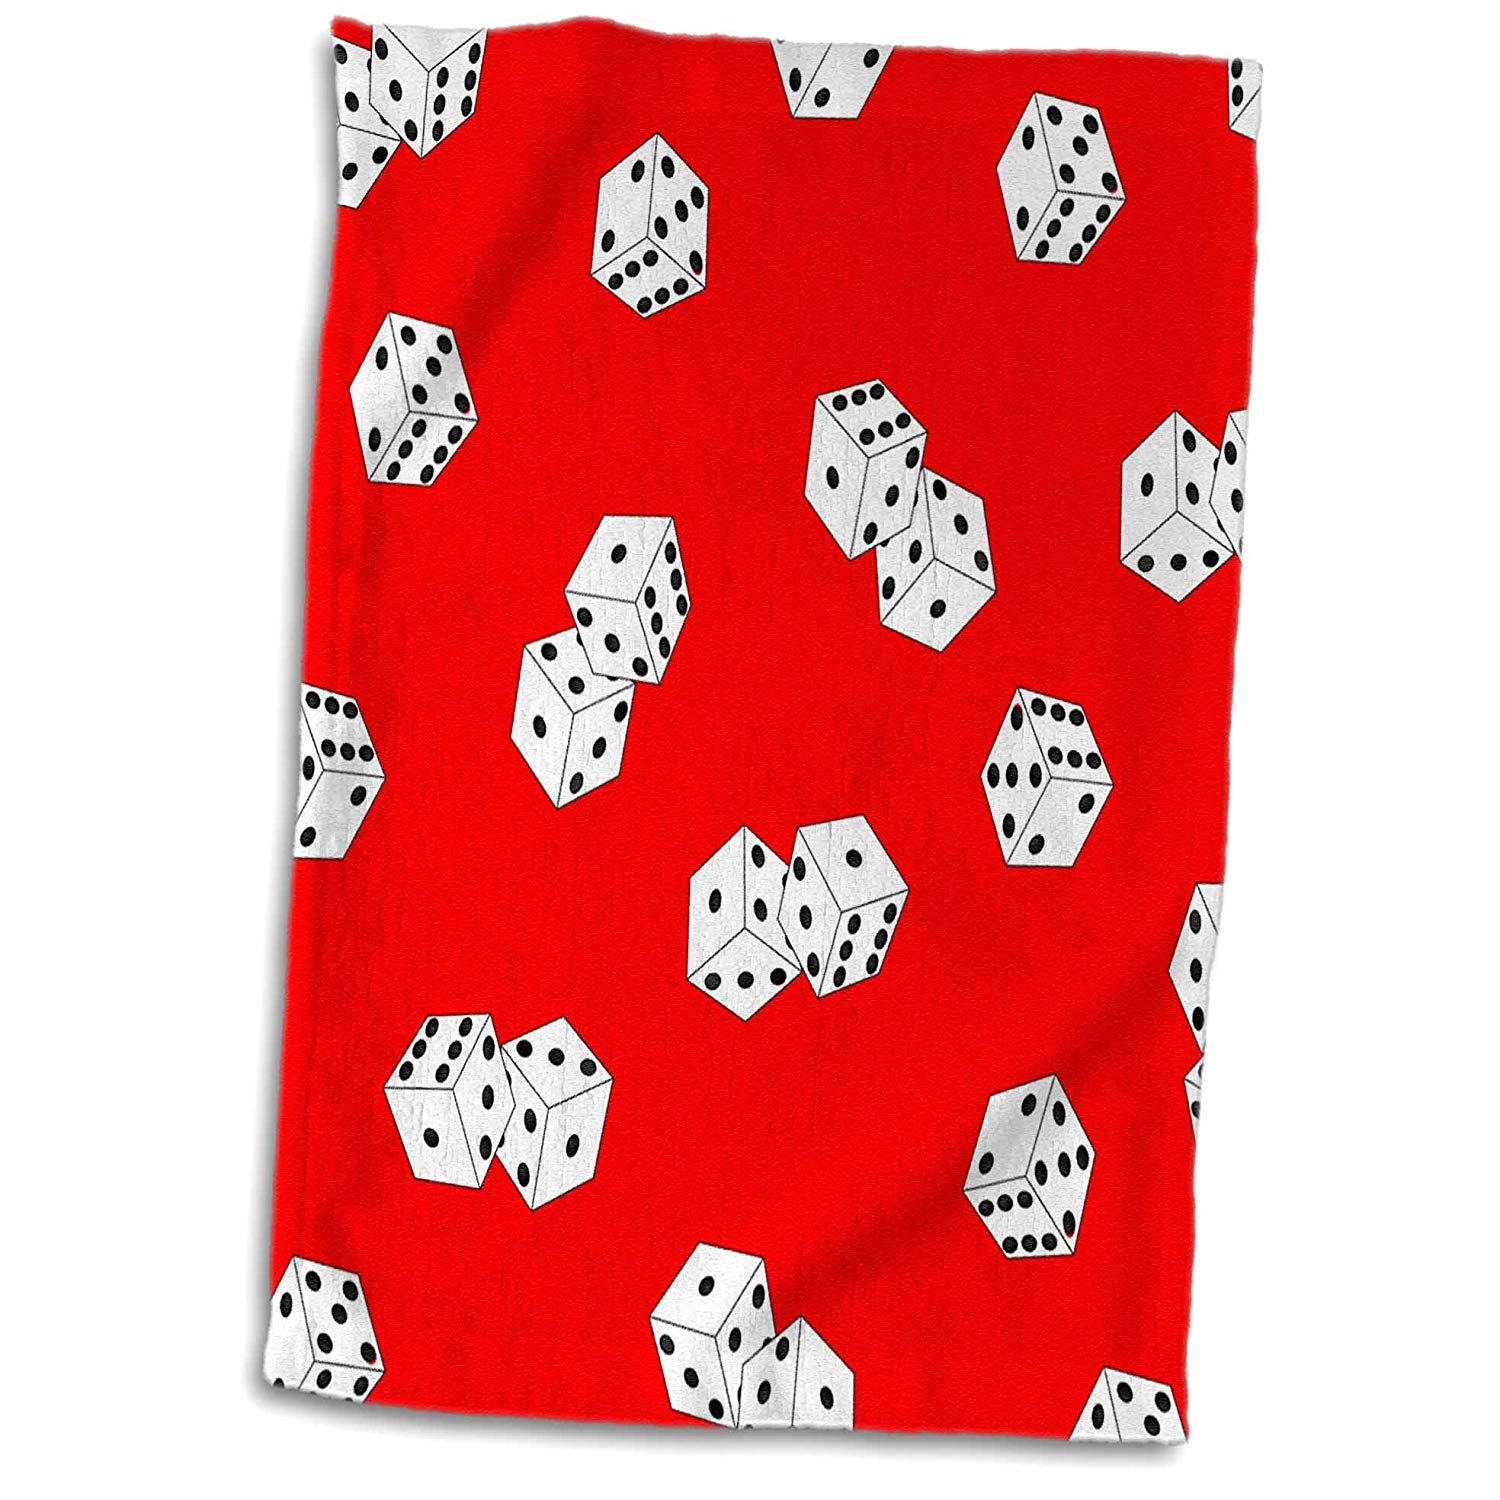 3dRose Red and White Dice Print Towel,